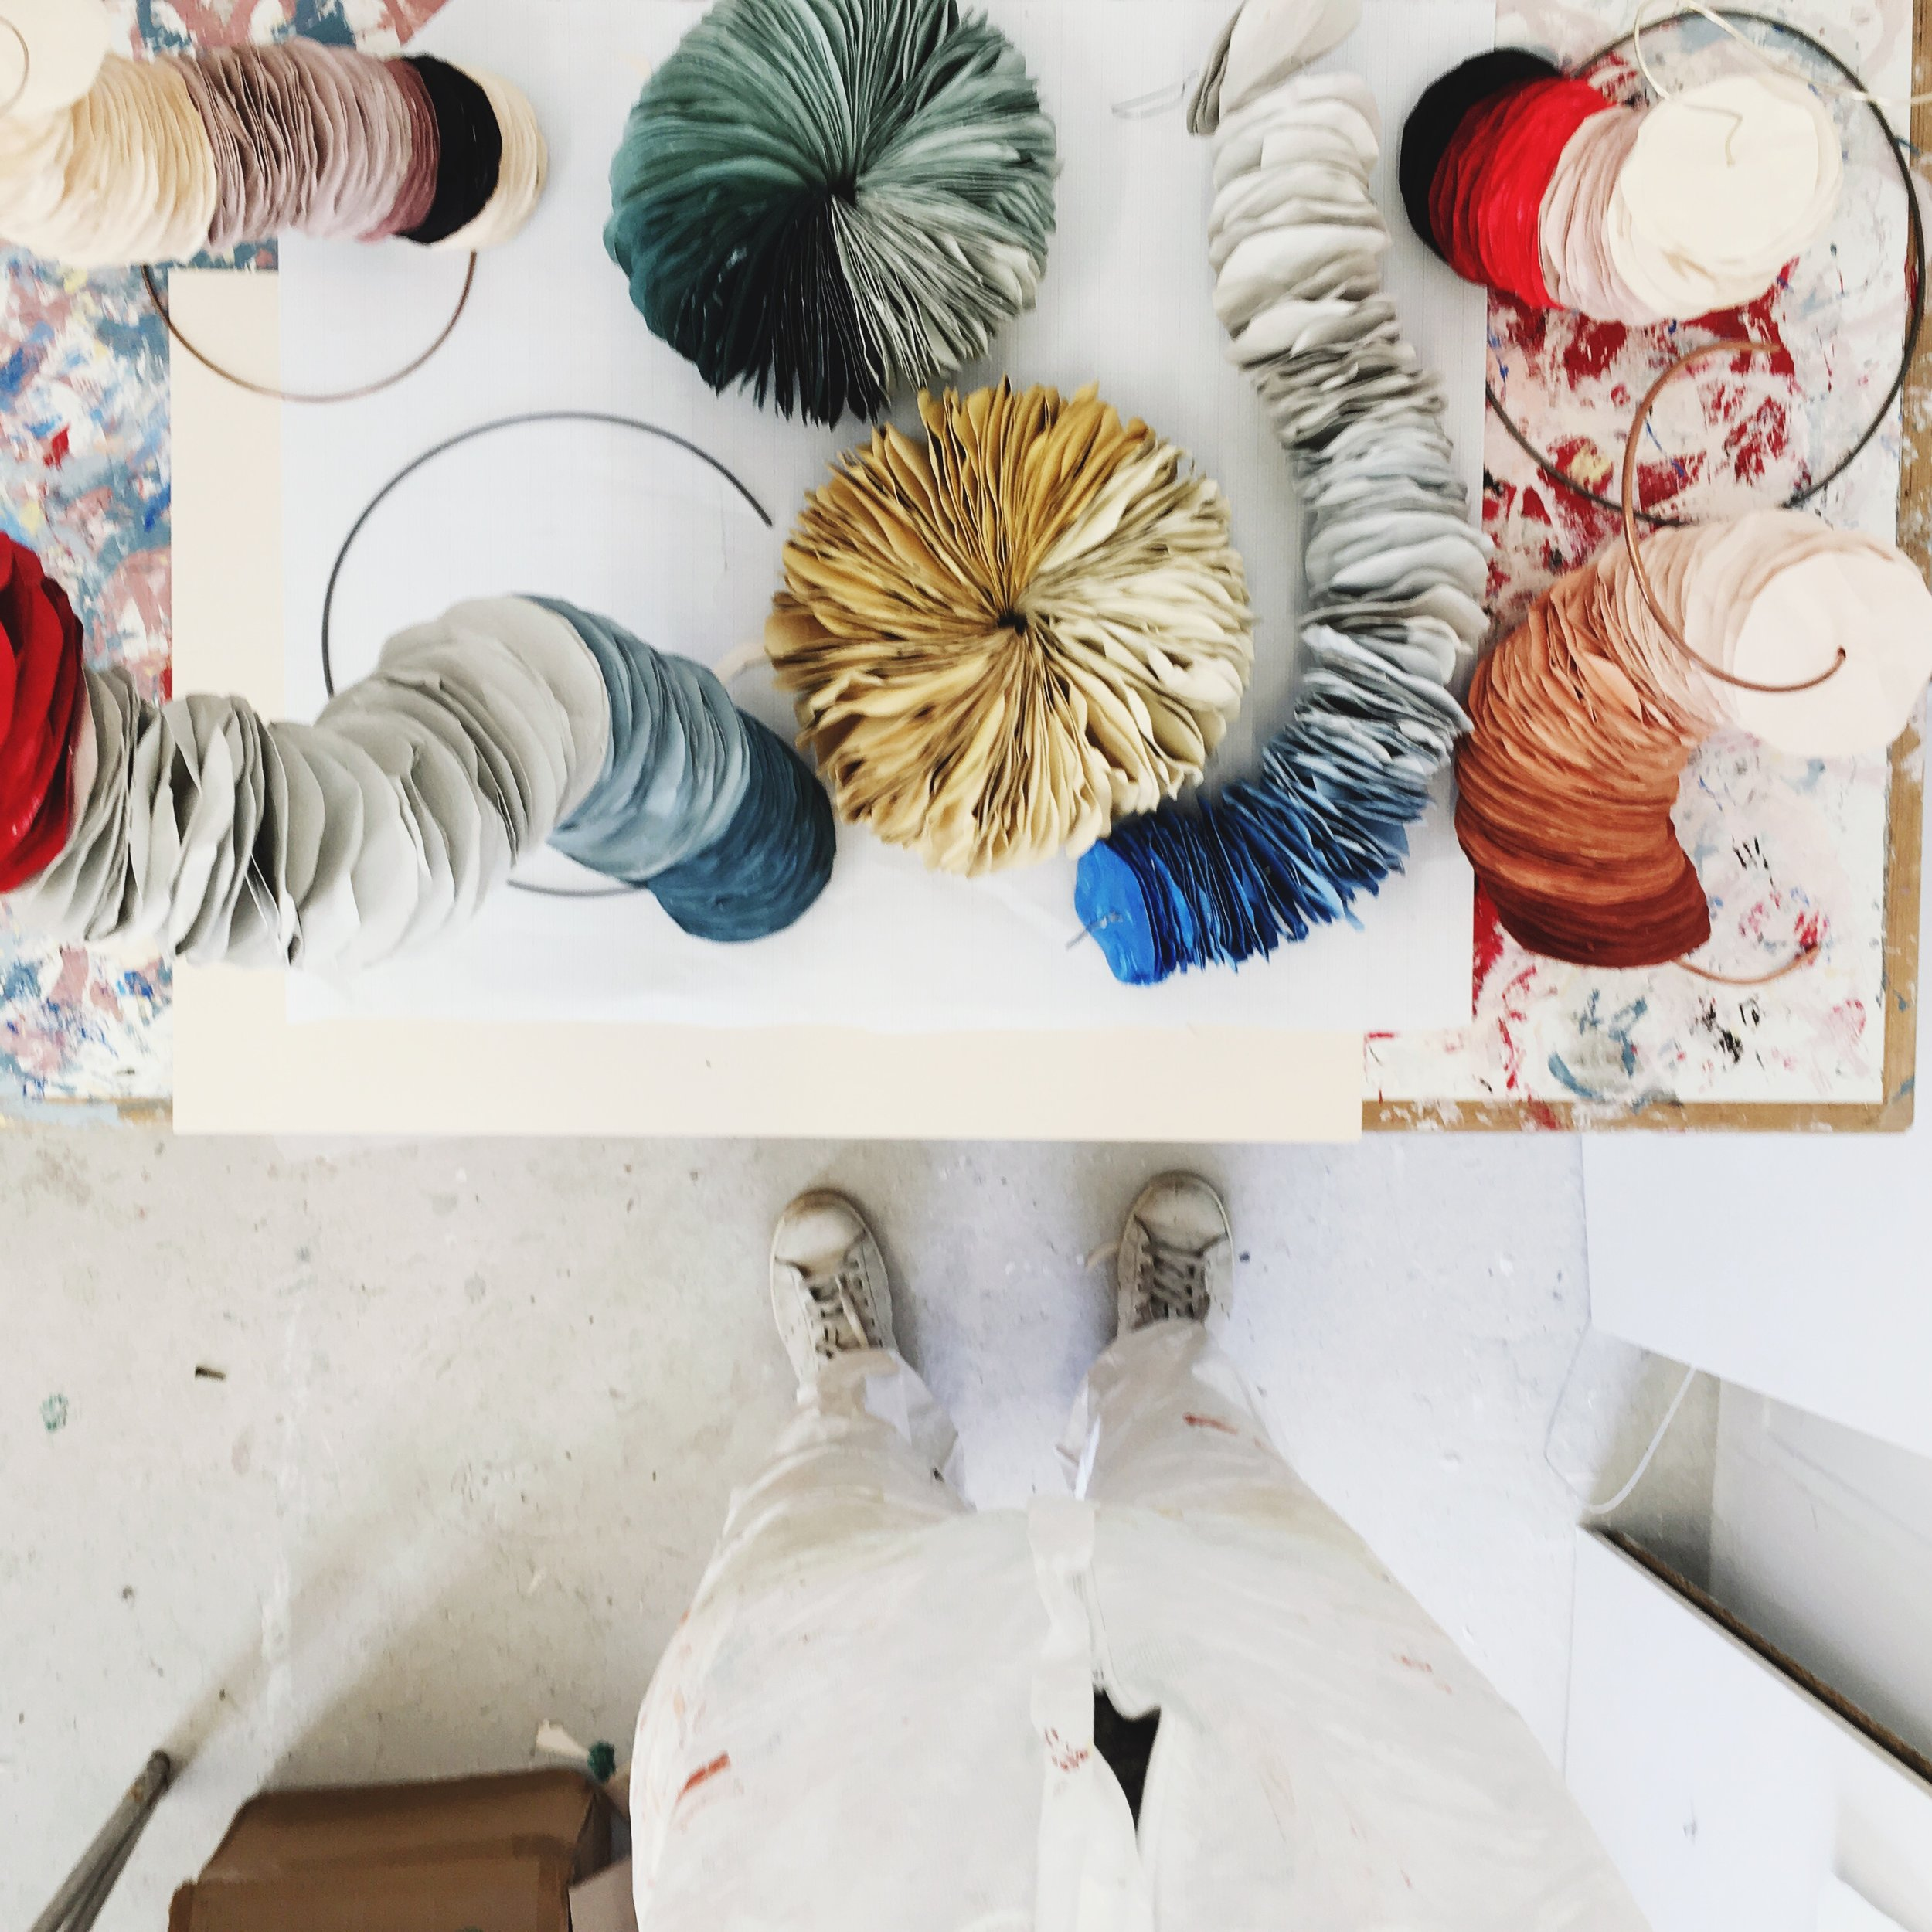 Paper sculptures from above